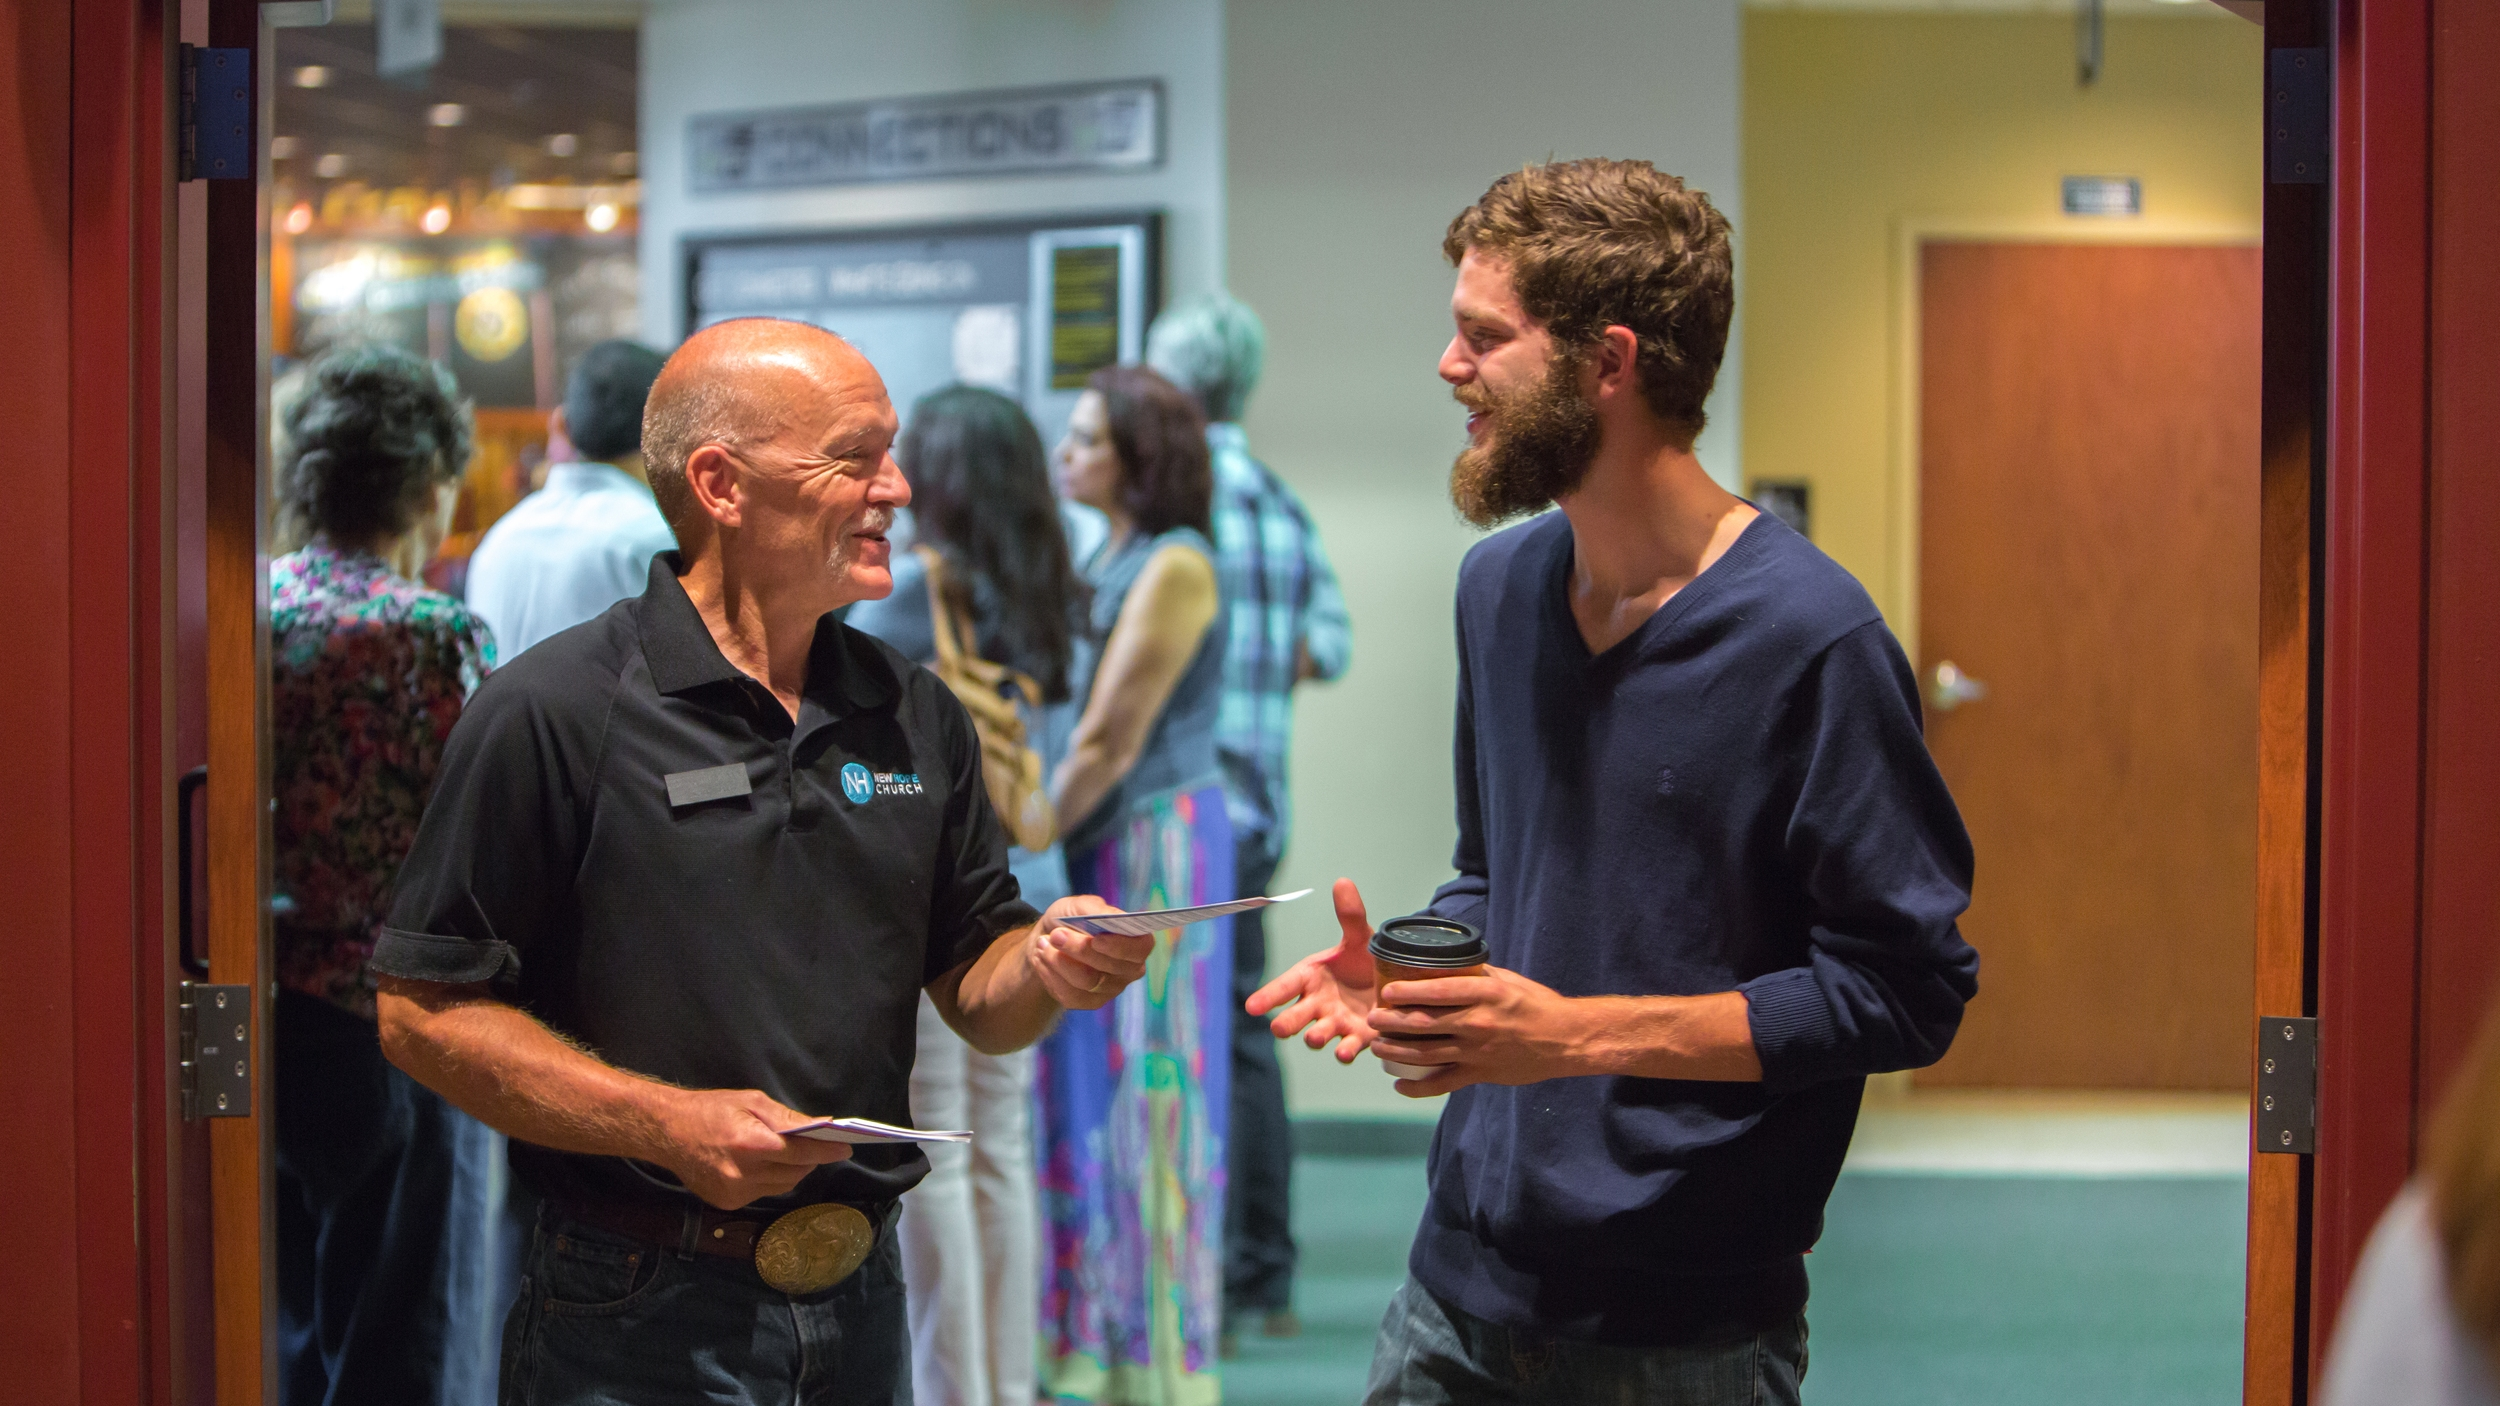 Volunteer - There are serving opportunities all throughout New Hope Church.Join us in furthering our mission and reaching more people for Jesus!